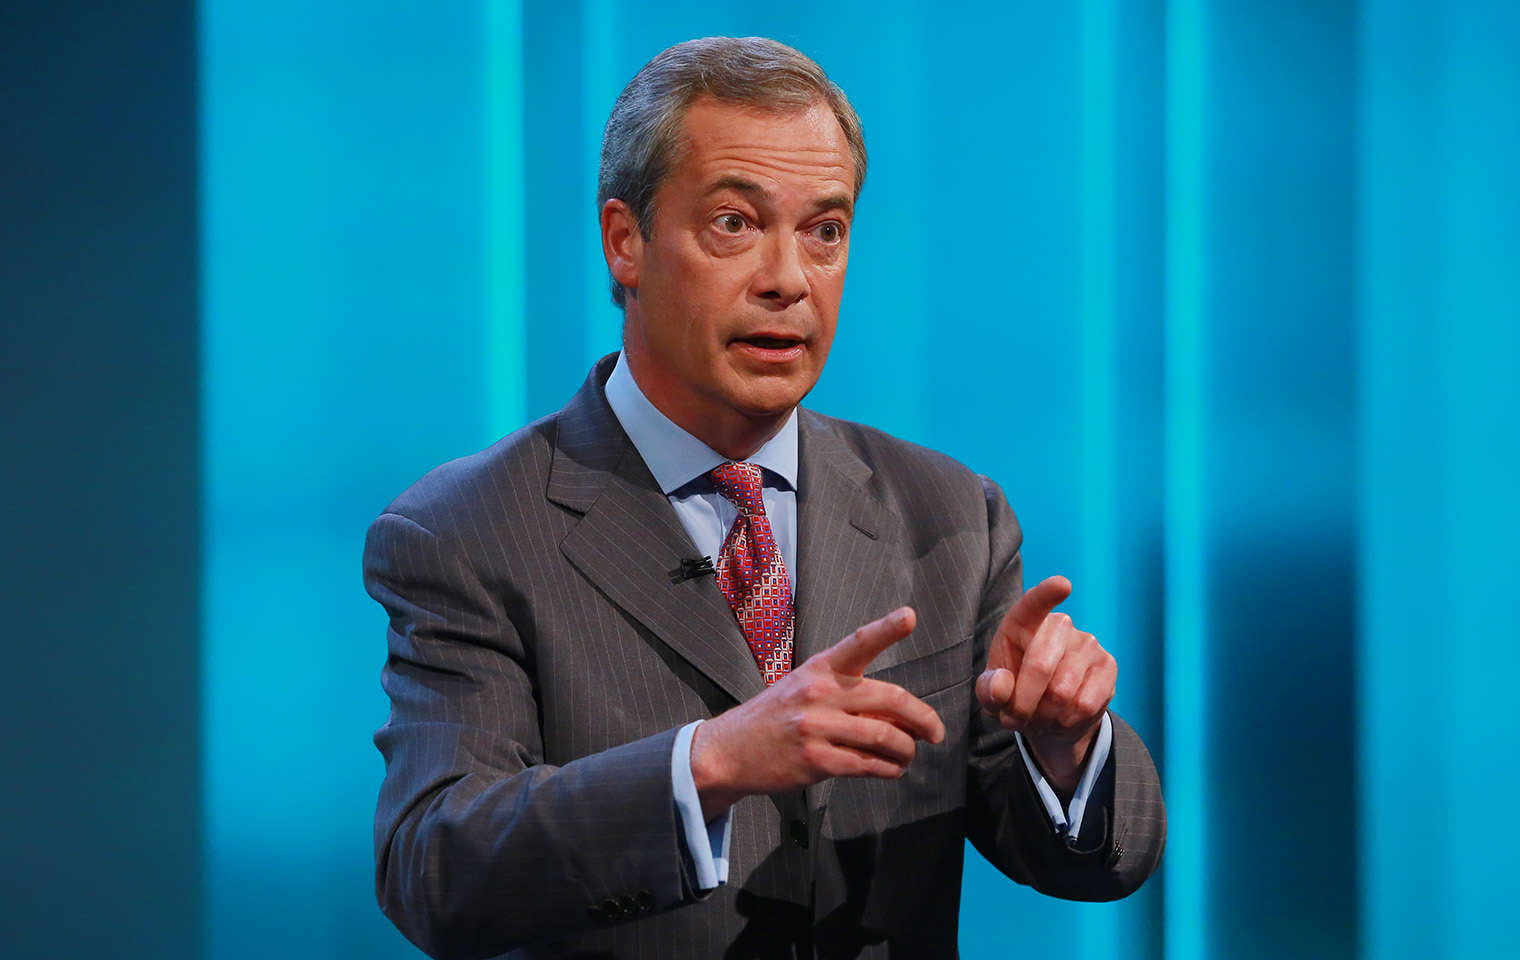 Nigel Farage Calls Himself A Victim When Talking About Jo Cox And Refugees 12258 1jbxtgs